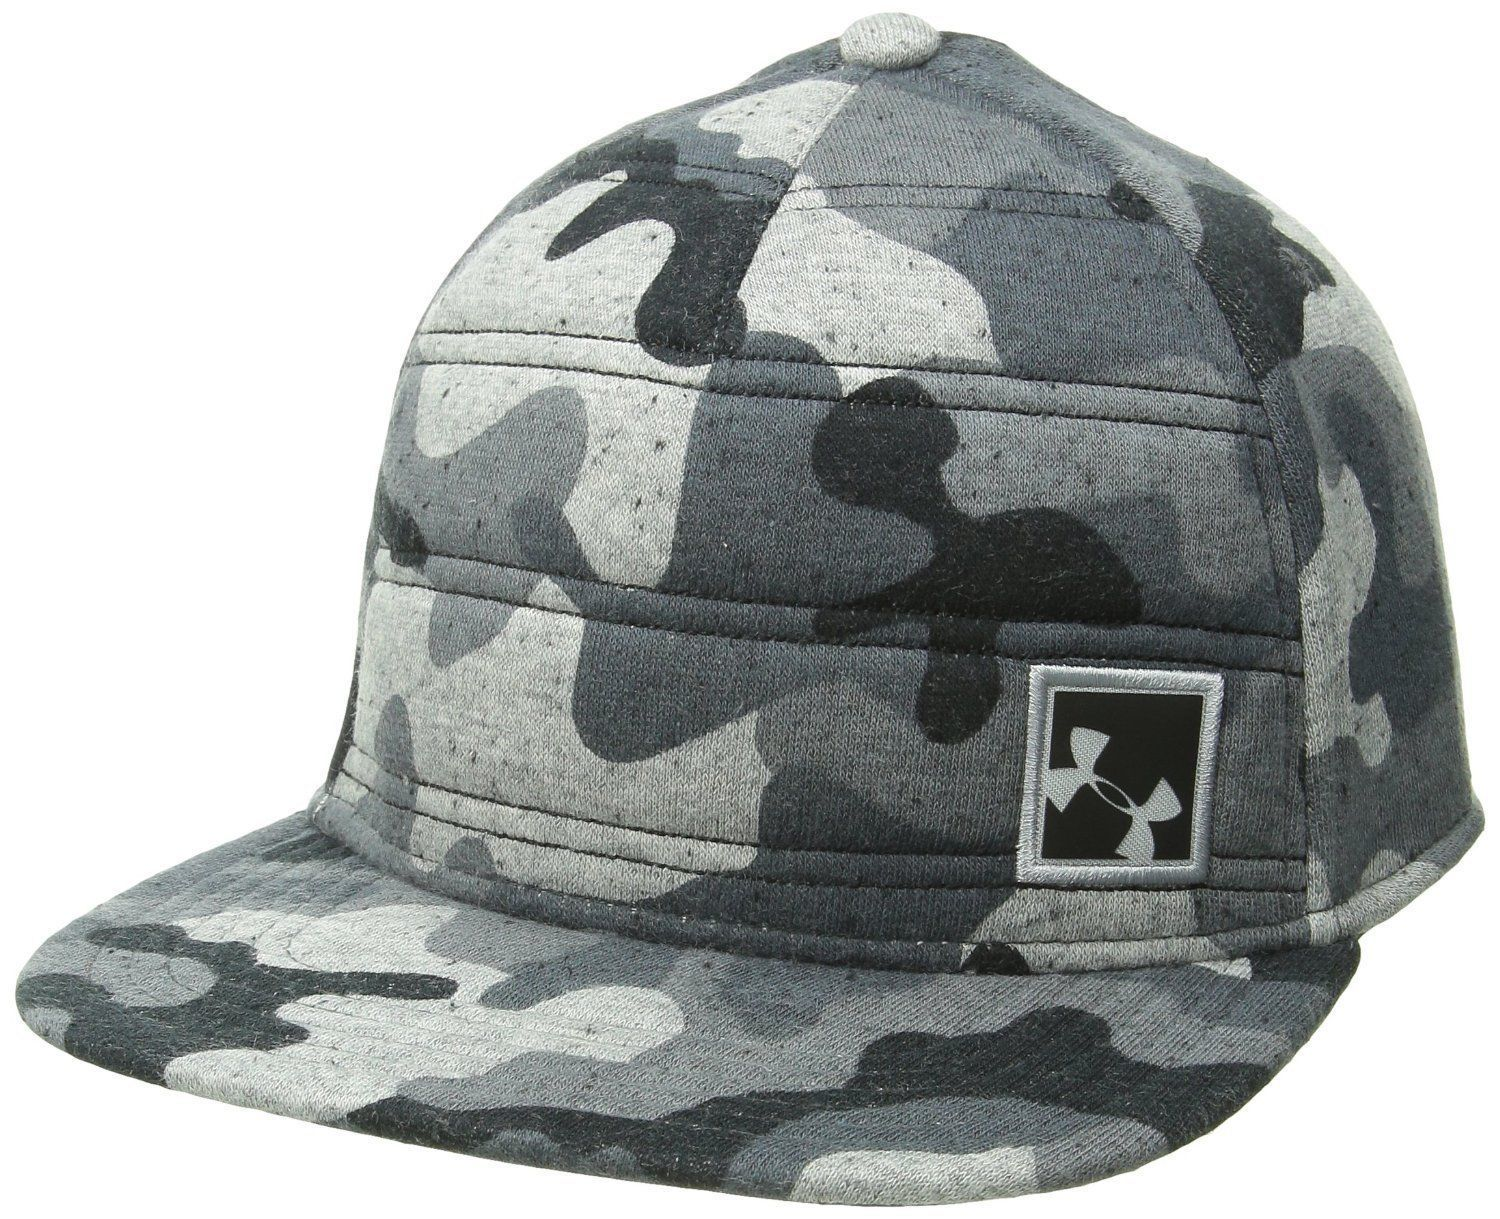 Under Armour Men's Quilted Black/Graphite/Amalgam Gray Camo Snap Back Hat (One Size) 12231